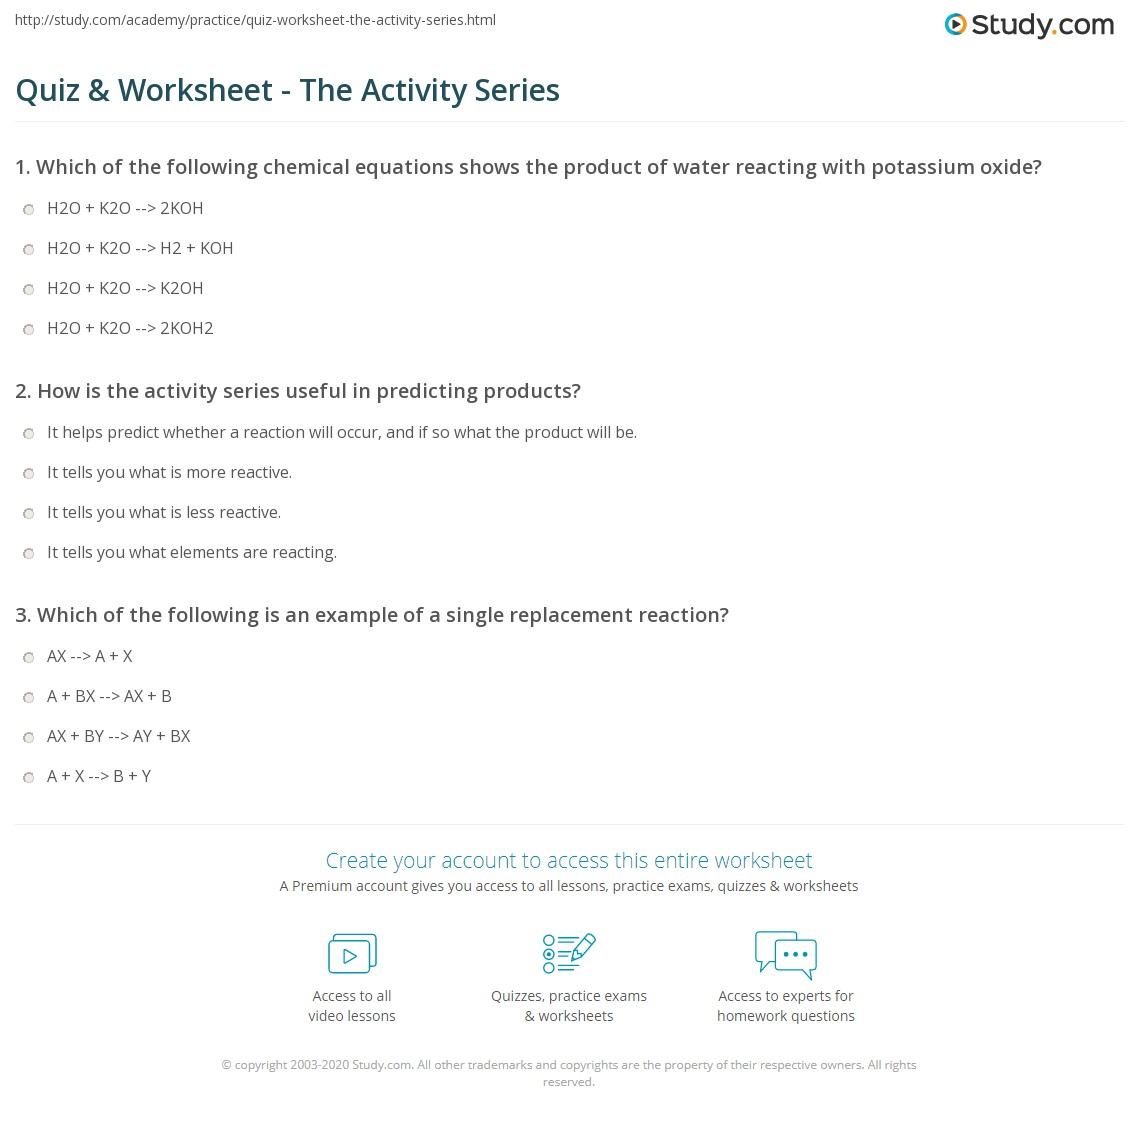 Aldiablosus  Stunning Quiz Amp Worksheet  The Activity Series  Studycom With Exquisite Print The Activity Series Predicting Products Of Single Displacement Reactions Worksheet With Astonishing Th Grade Music Worksheets Also Free Printable Alphabet Dot To Dot Worksheets In Addition Food Label Analysis Worksheet And Measurement Worksheets Pdf As Well As Maths Worksheets With Answers Additionally Shapes Worksheet For Kids From Studycom With Aldiablosus  Exquisite Quiz Amp Worksheet  The Activity Series  Studycom With Astonishing Print The Activity Series Predicting Products Of Single Displacement Reactions Worksheet And Stunning Th Grade Music Worksheets Also Free Printable Alphabet Dot To Dot Worksheets In Addition Food Label Analysis Worksheet From Studycom